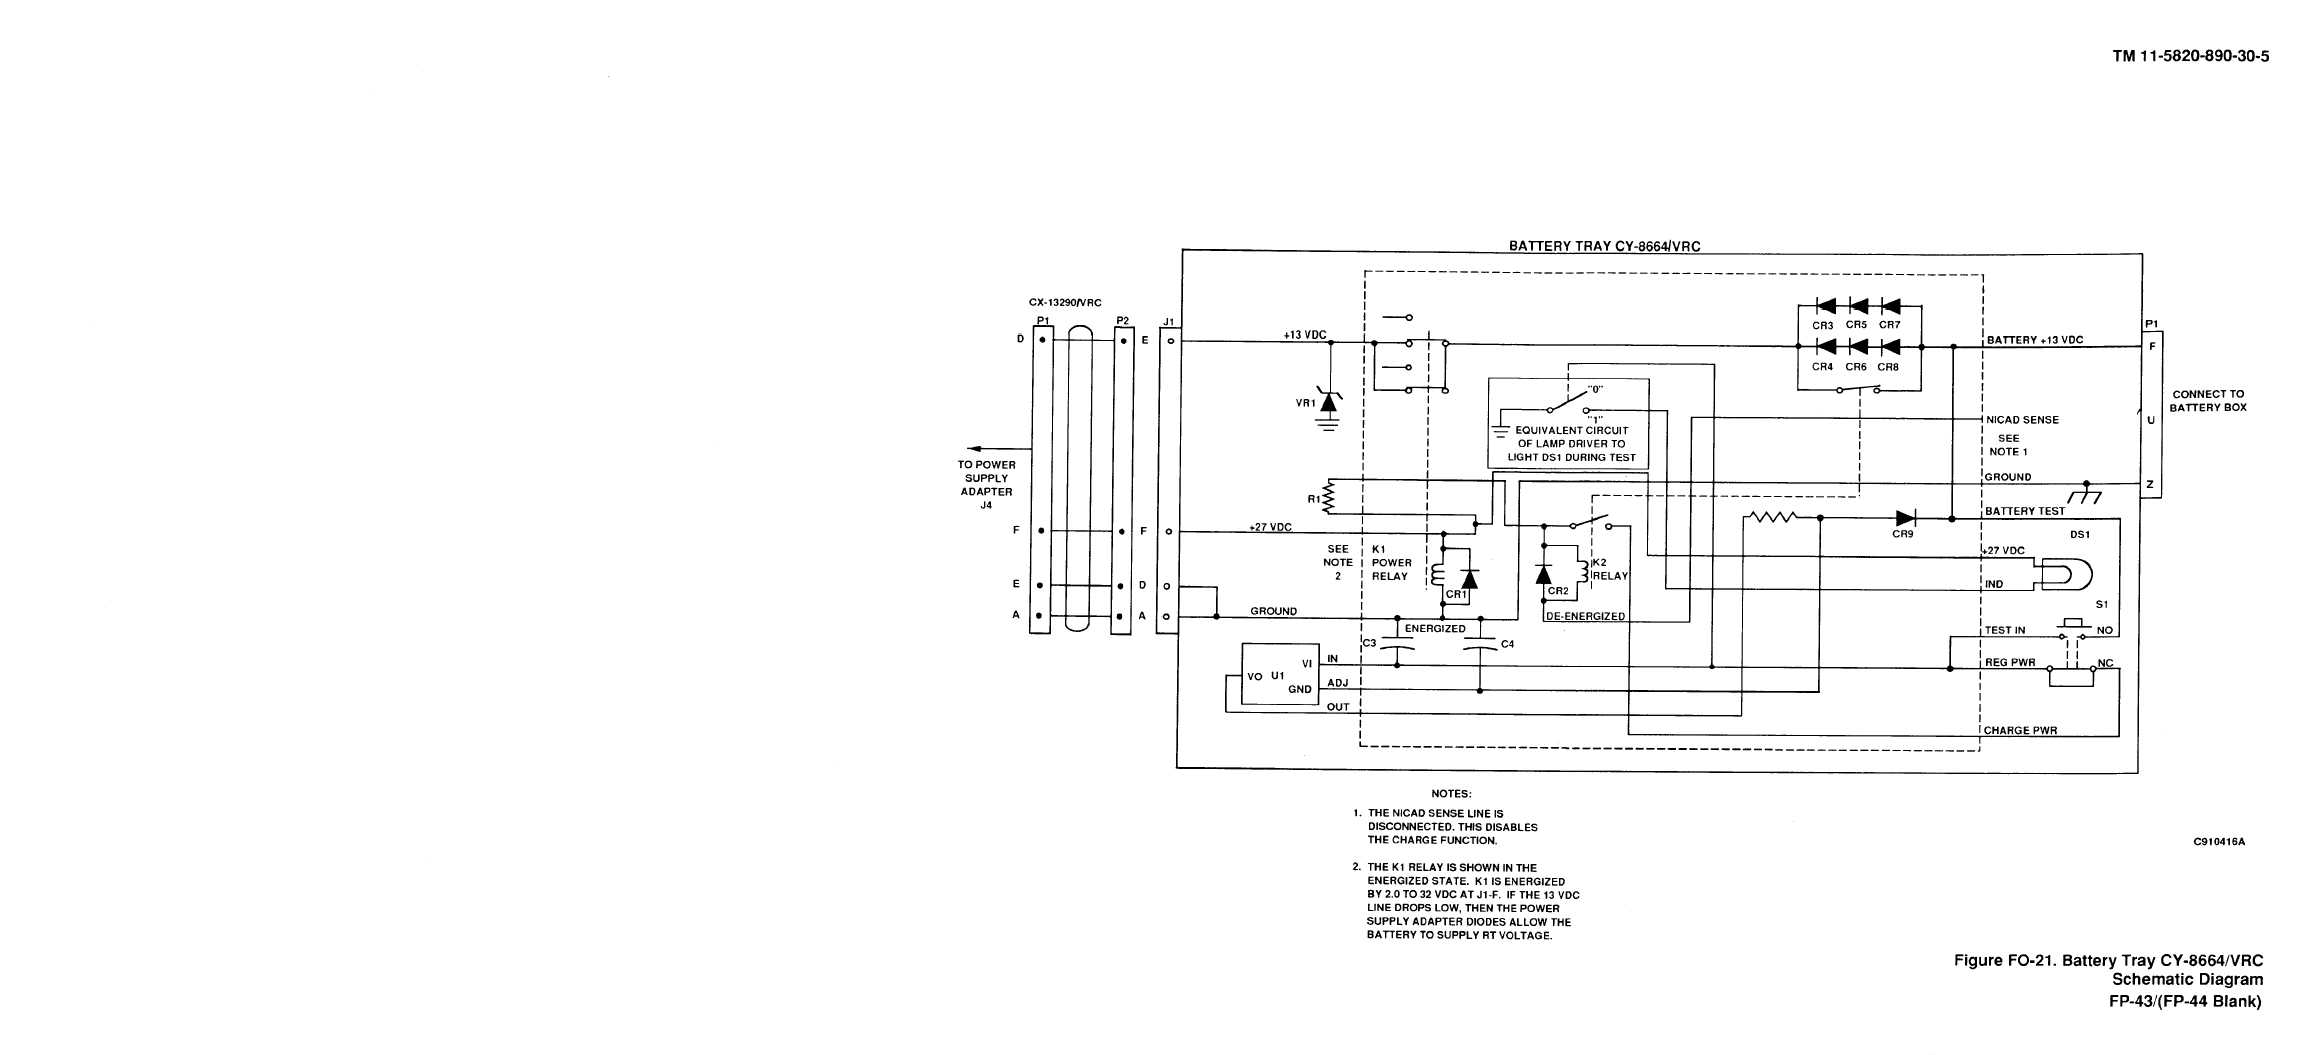 Schematic Heathkit Receiver Gr 54, Schematic, Get Free